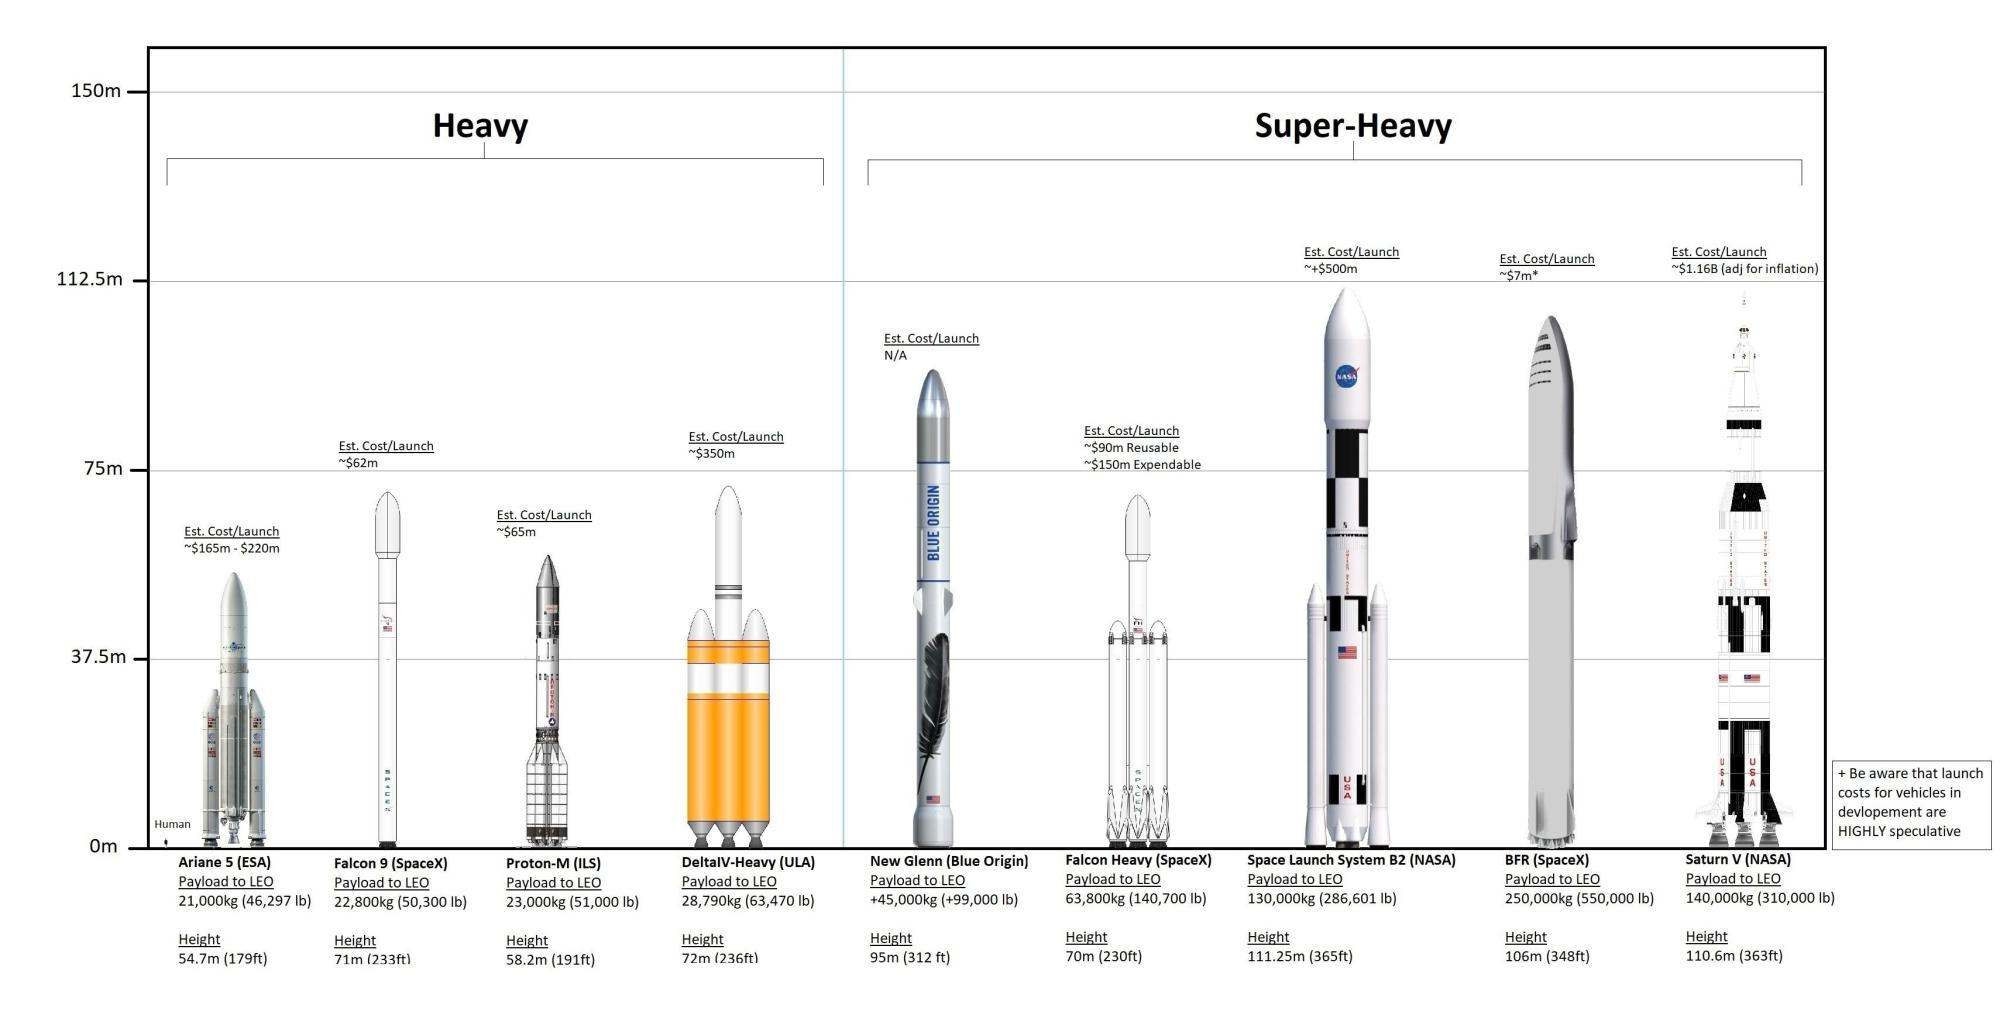 hight resolution of chart comparing current and in development rockets and how they stack up to the falcon and bfr vehicles